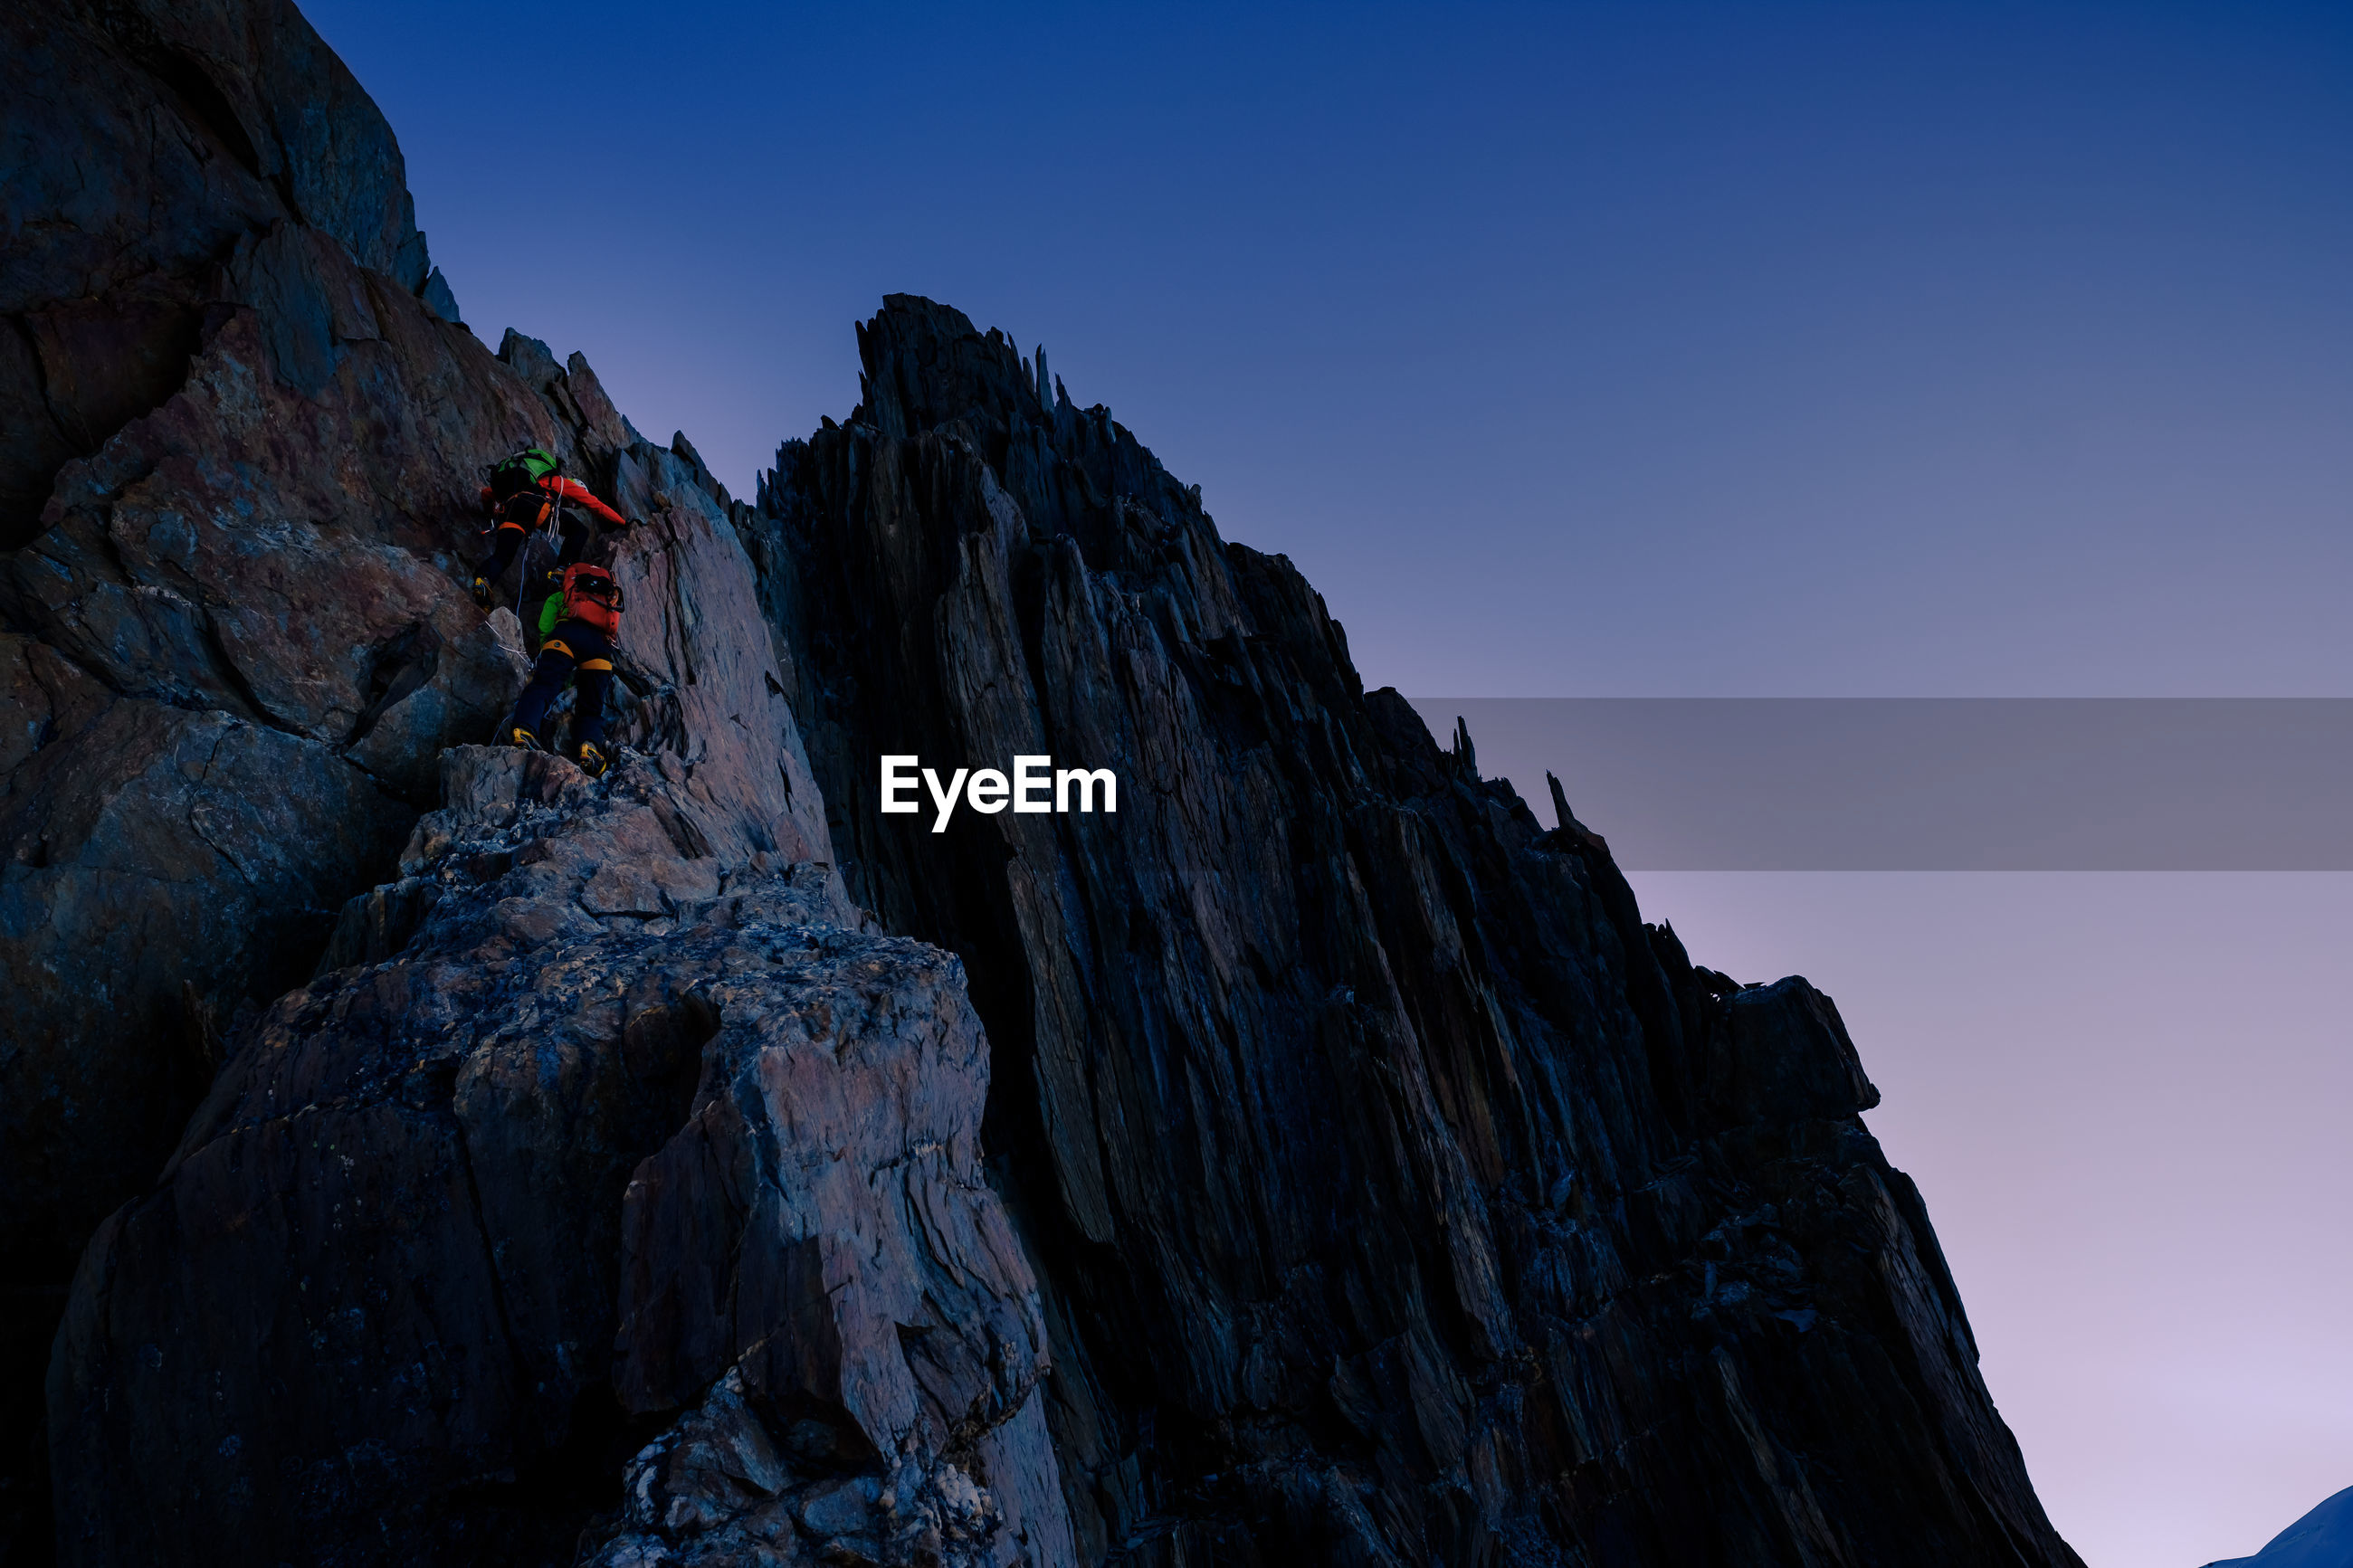 Low angle view of people climbing rocky mountain against sky during sunrise